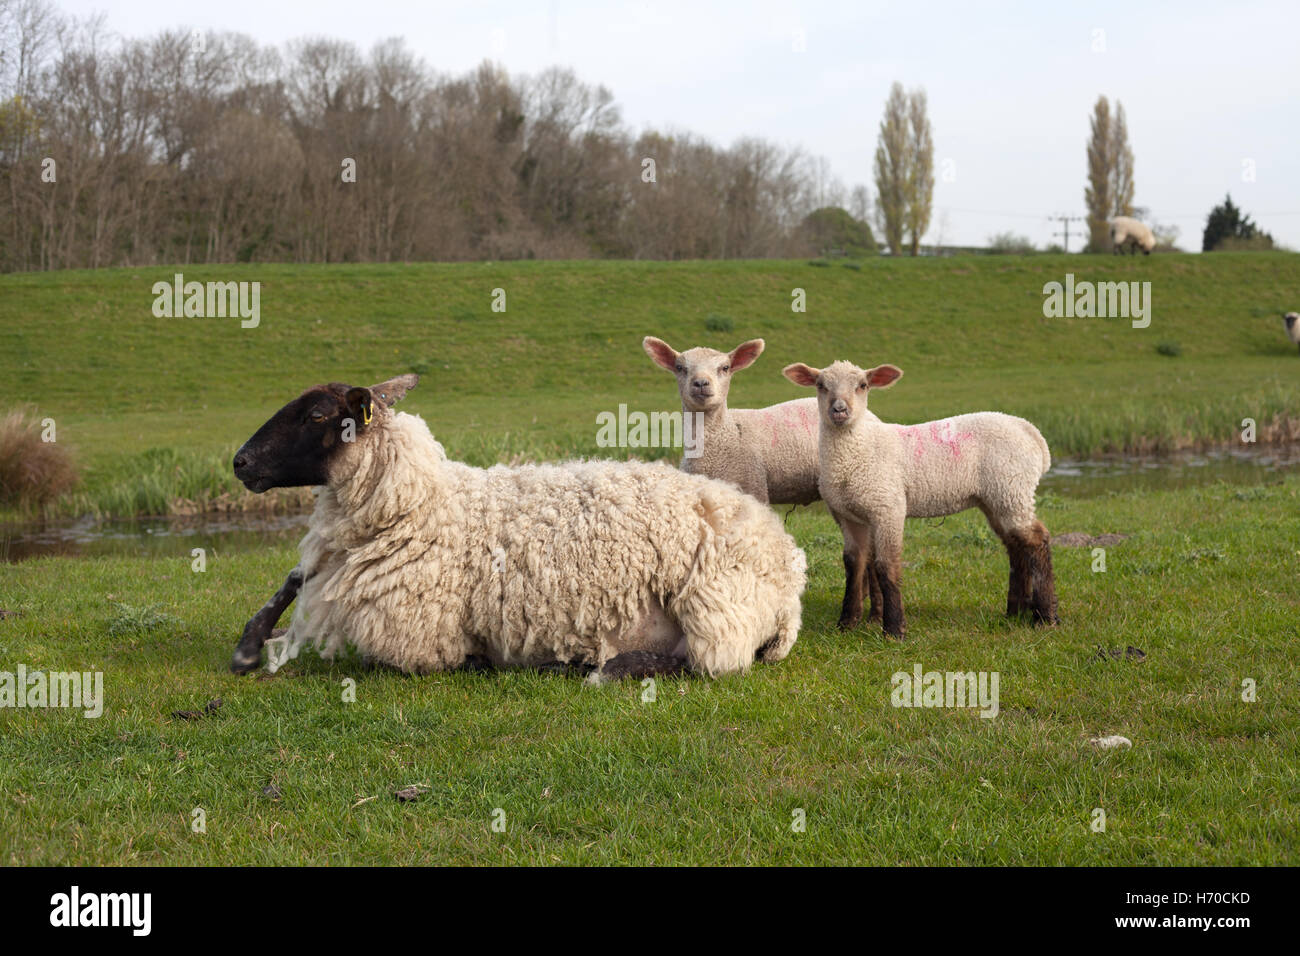 Black head ewe with her two lambs, Winchelsea, Sussex, UK - Stock Image